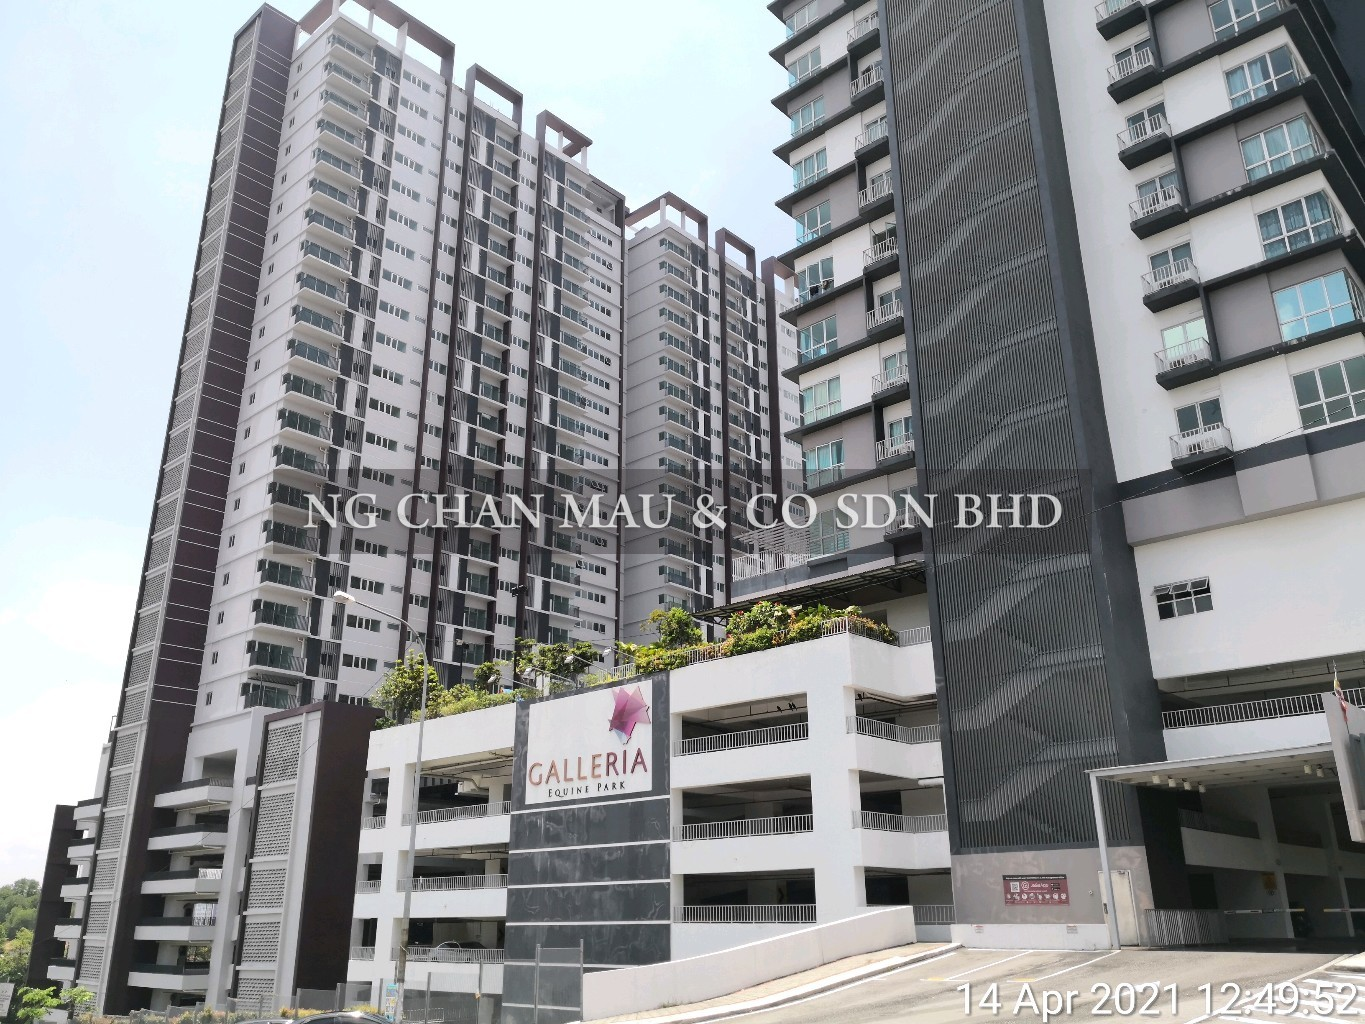 [Price Dropped 27% + ROI up to 8%] Galleria Equine Park Service Apartment [10 mins walk to AEON Mall Taman Equine]